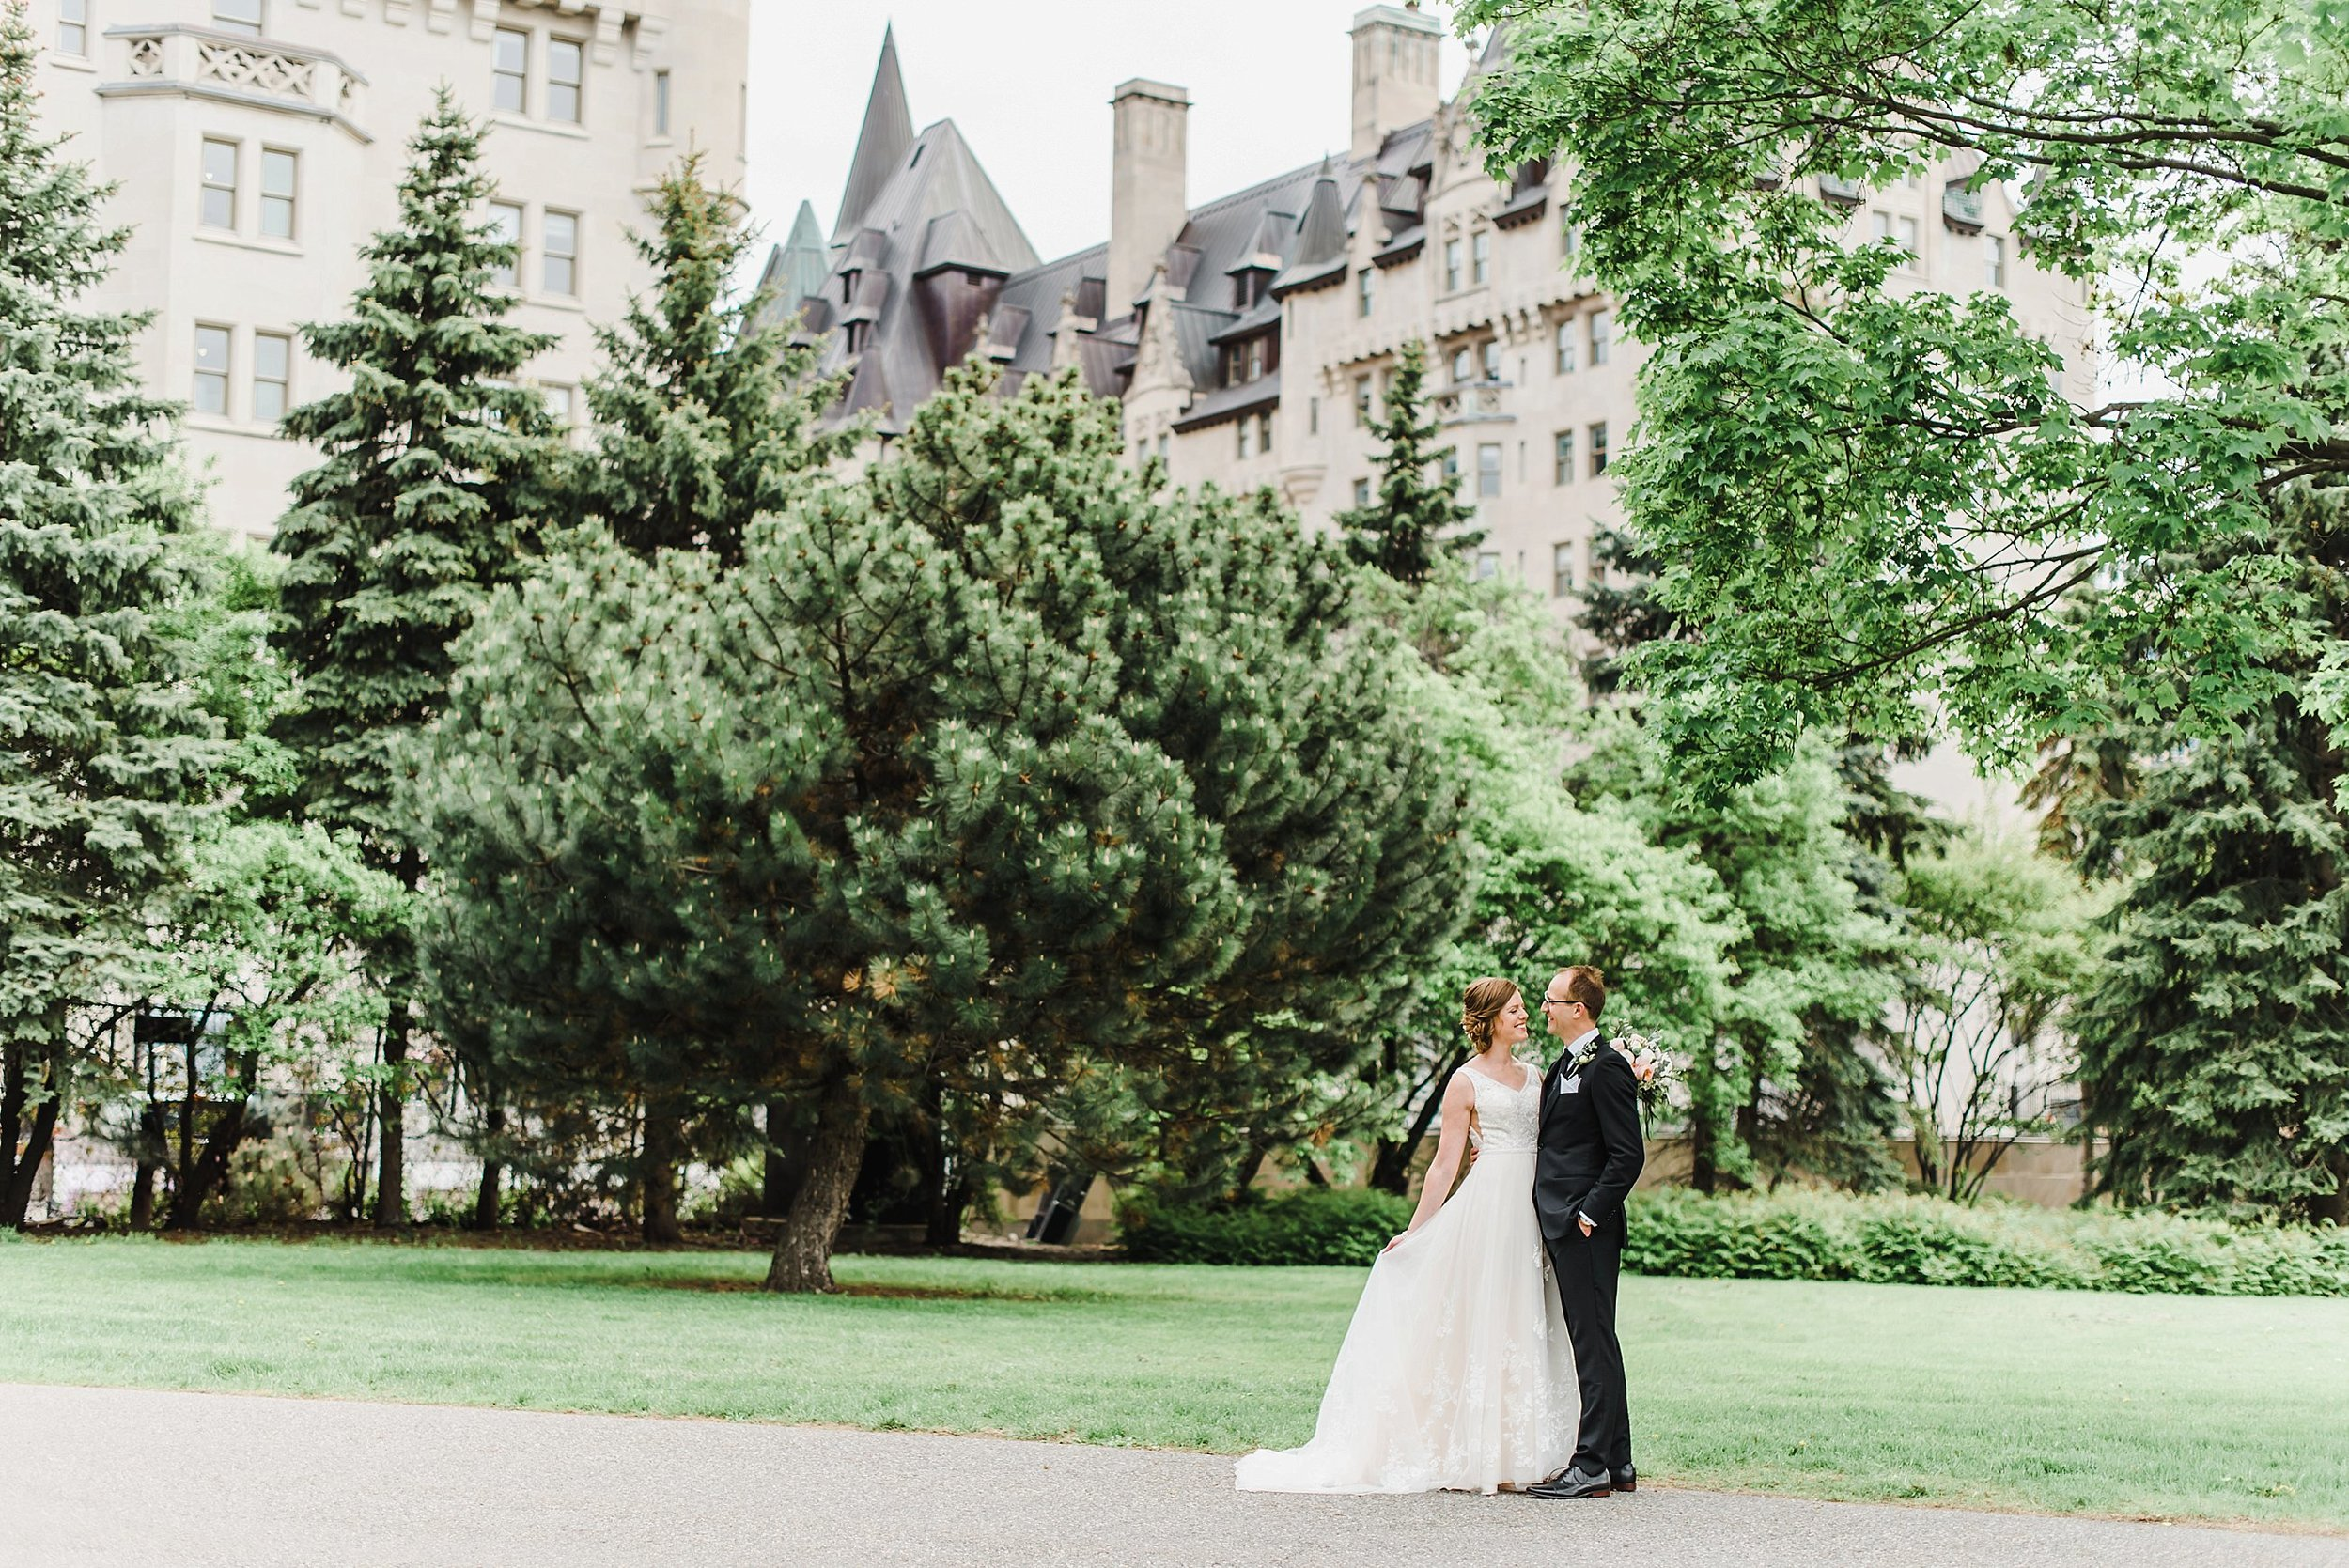 light airy indie fine art ottawa wedding photographer | Ali and Batoul Photography_0309.jpg